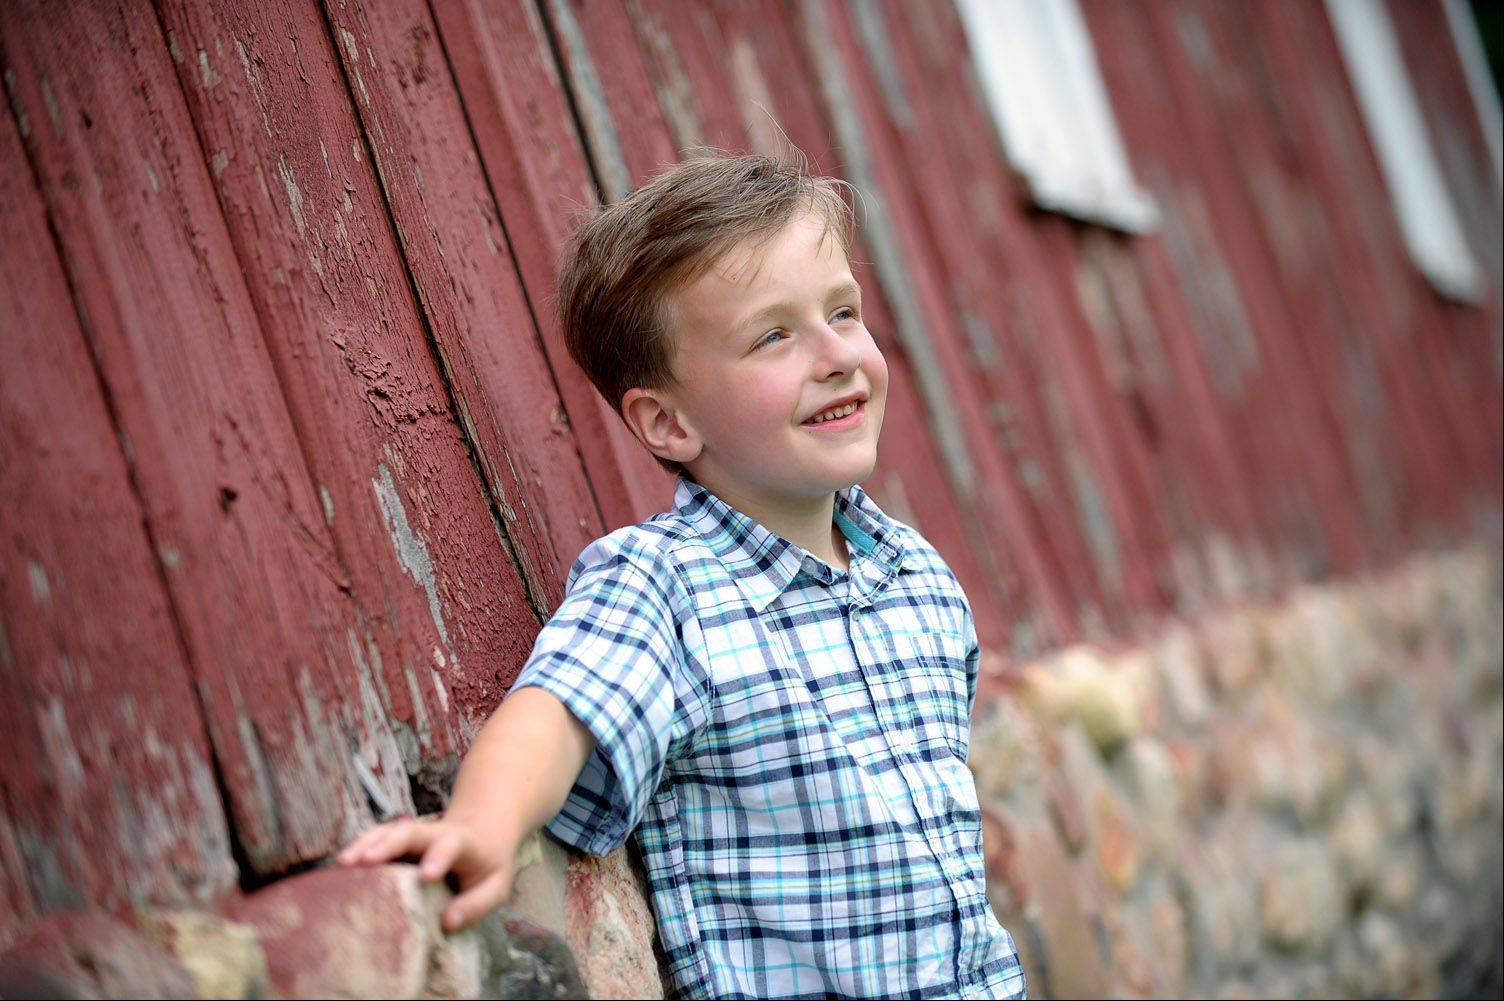 Once your kids are old enough to pose for you, the options for backgrounds become endless. In this case, Laura used a telephoto lens and minimal depth of field to keep the focus on the subject, even while adding the color and texture of the barn in the background.